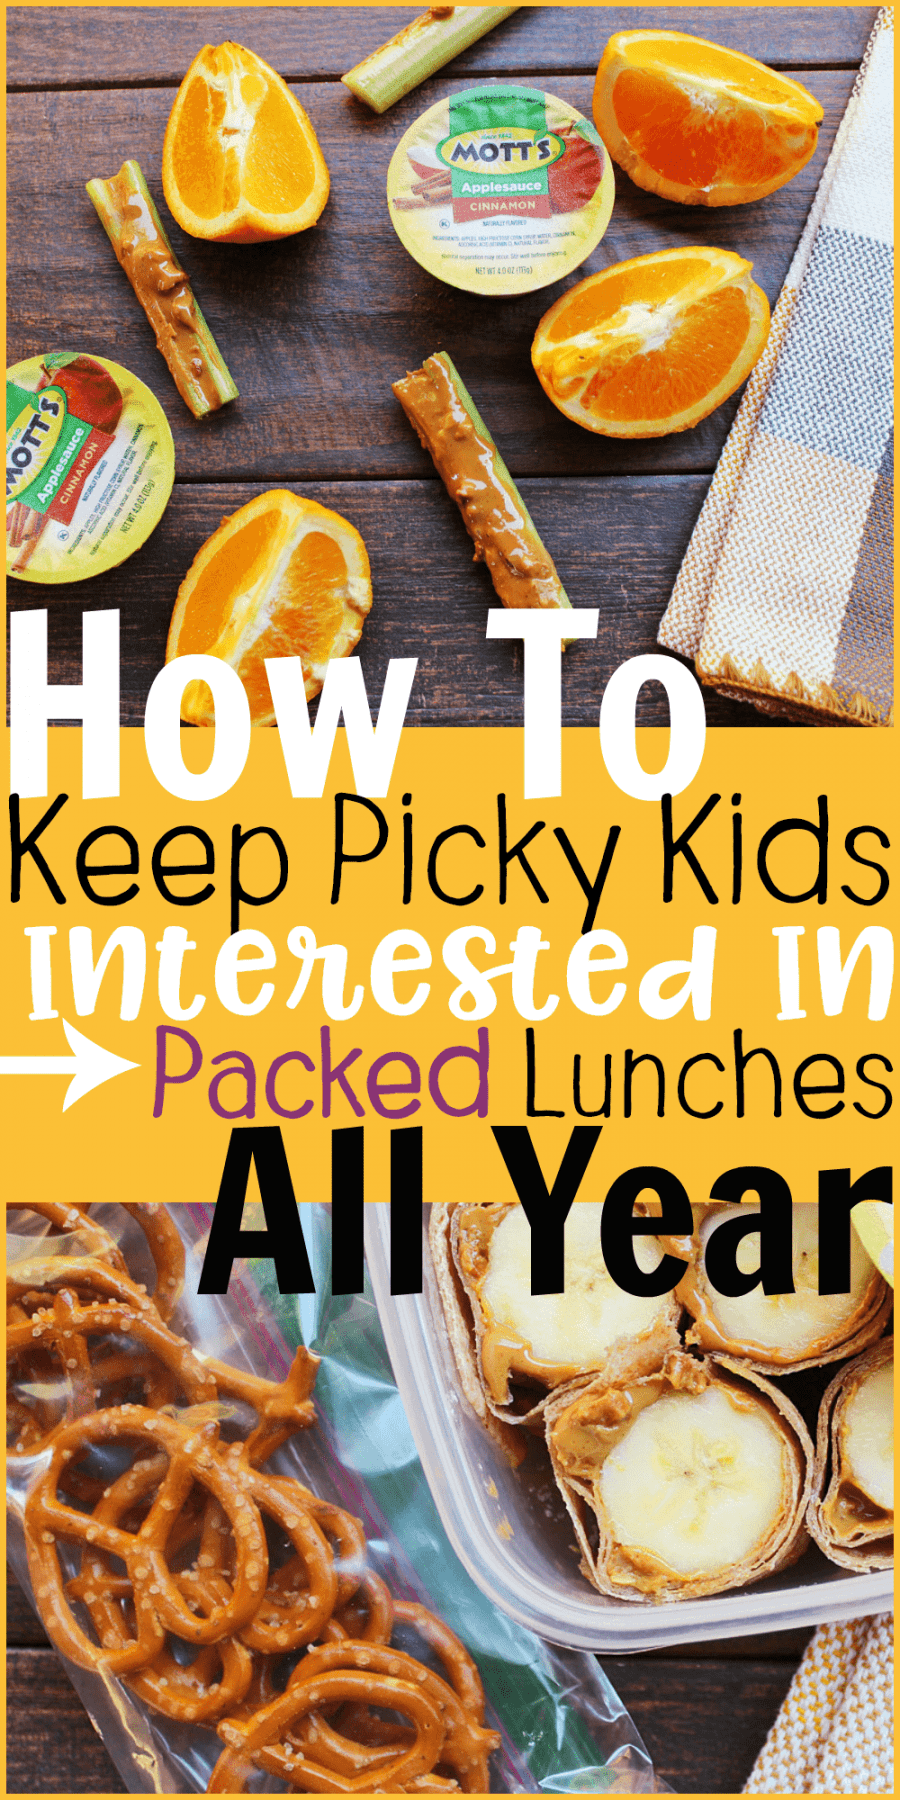 How to Keep Picky Eaters Interested in Packed Lunches All Year